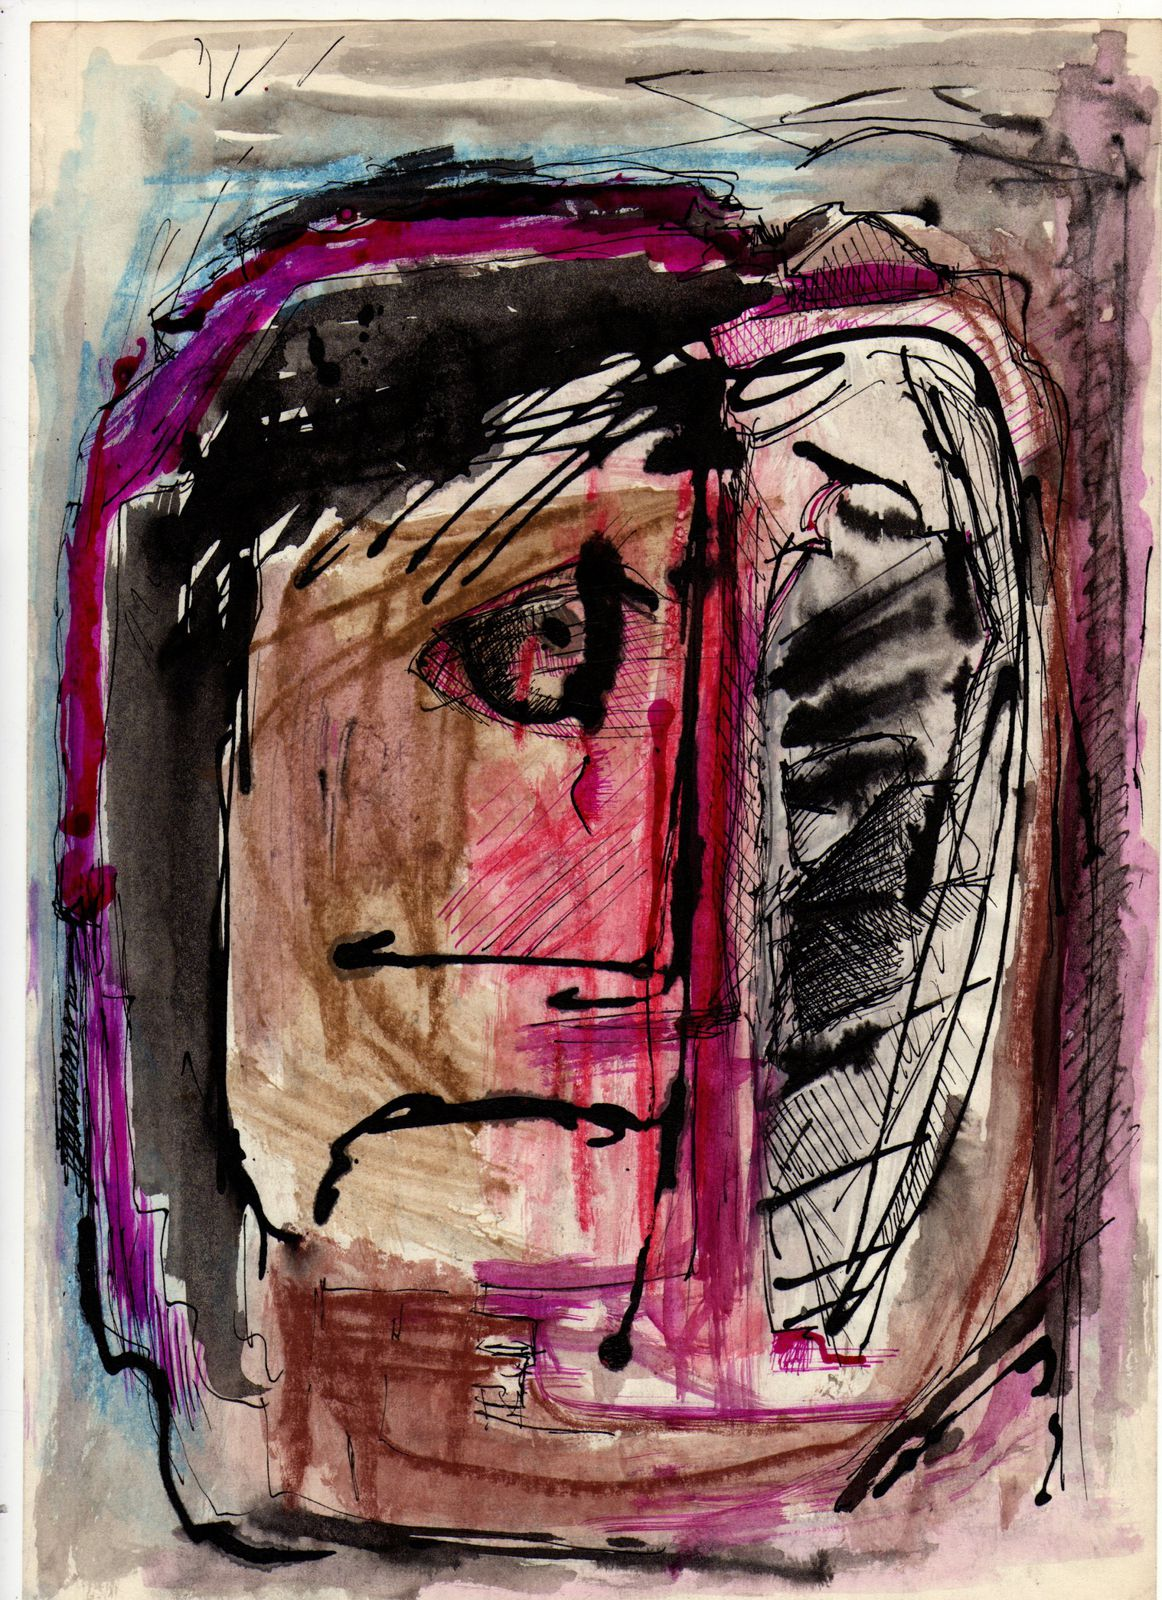 Faces 1 1990 21 30 cm ink on paper autors certificate and signature becarelli count dussi art gallery wien the best of modern art world